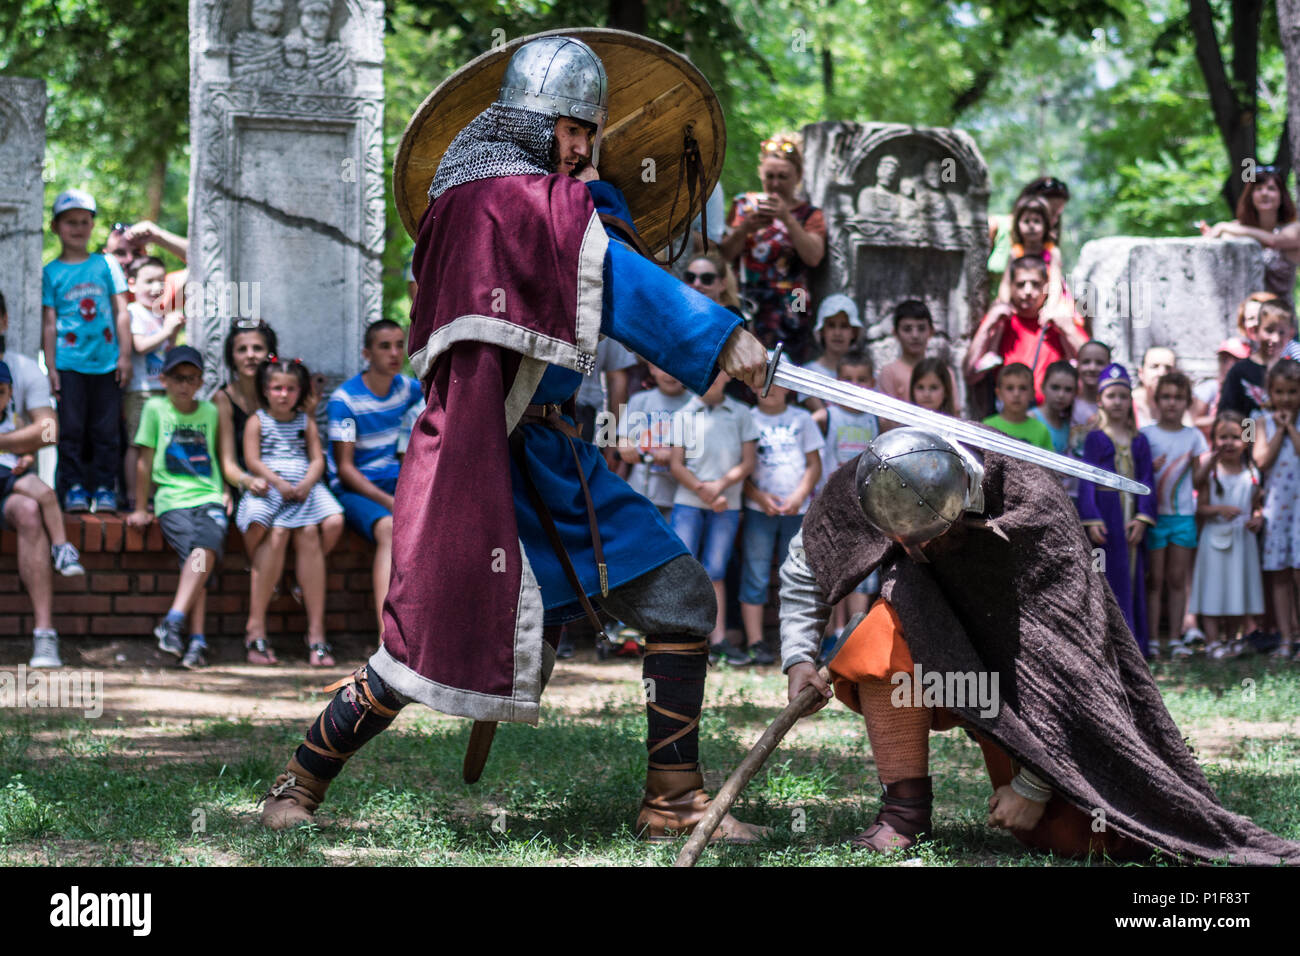 Nis, Serbia - June 10, 2018: Medieval knight with armor and swords fighting in nature on tournament and public watching. Middle ages battle concept Stock Photo